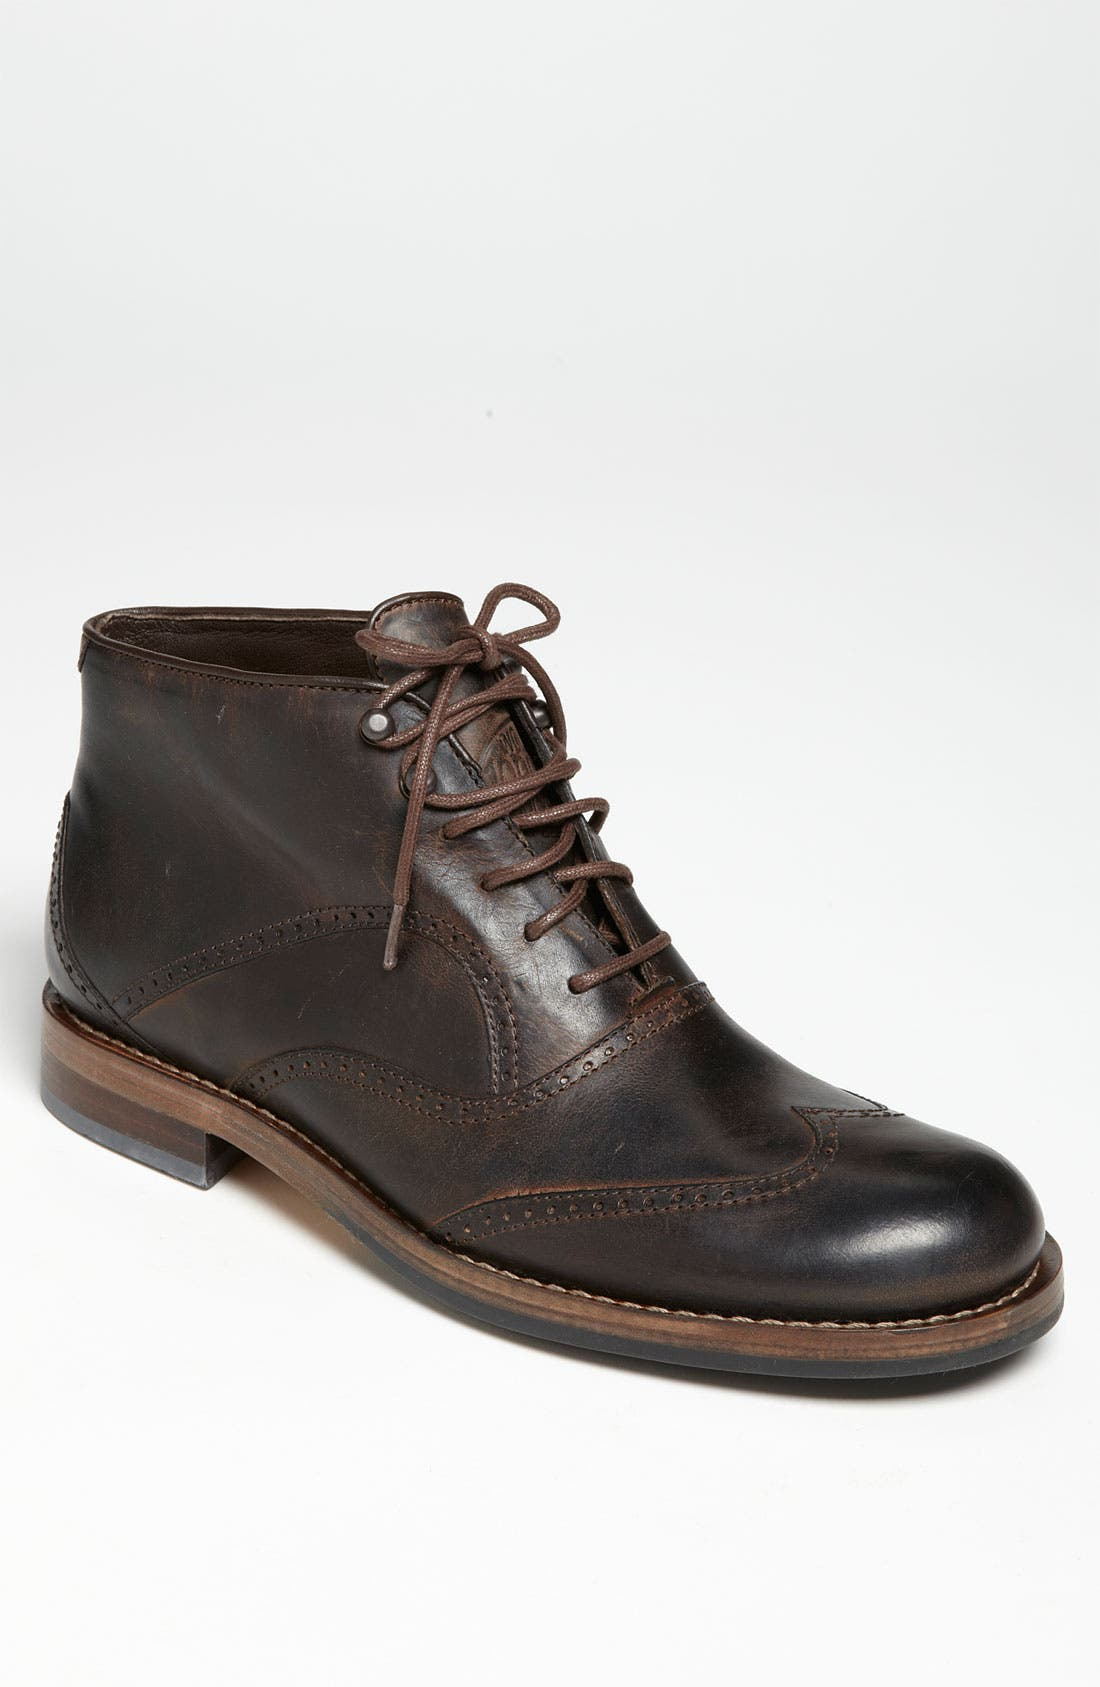 Alternate Image 1 Selected - Wolverine 'Wesley' Chukka Boot (Regular Retail Price: $294.00)